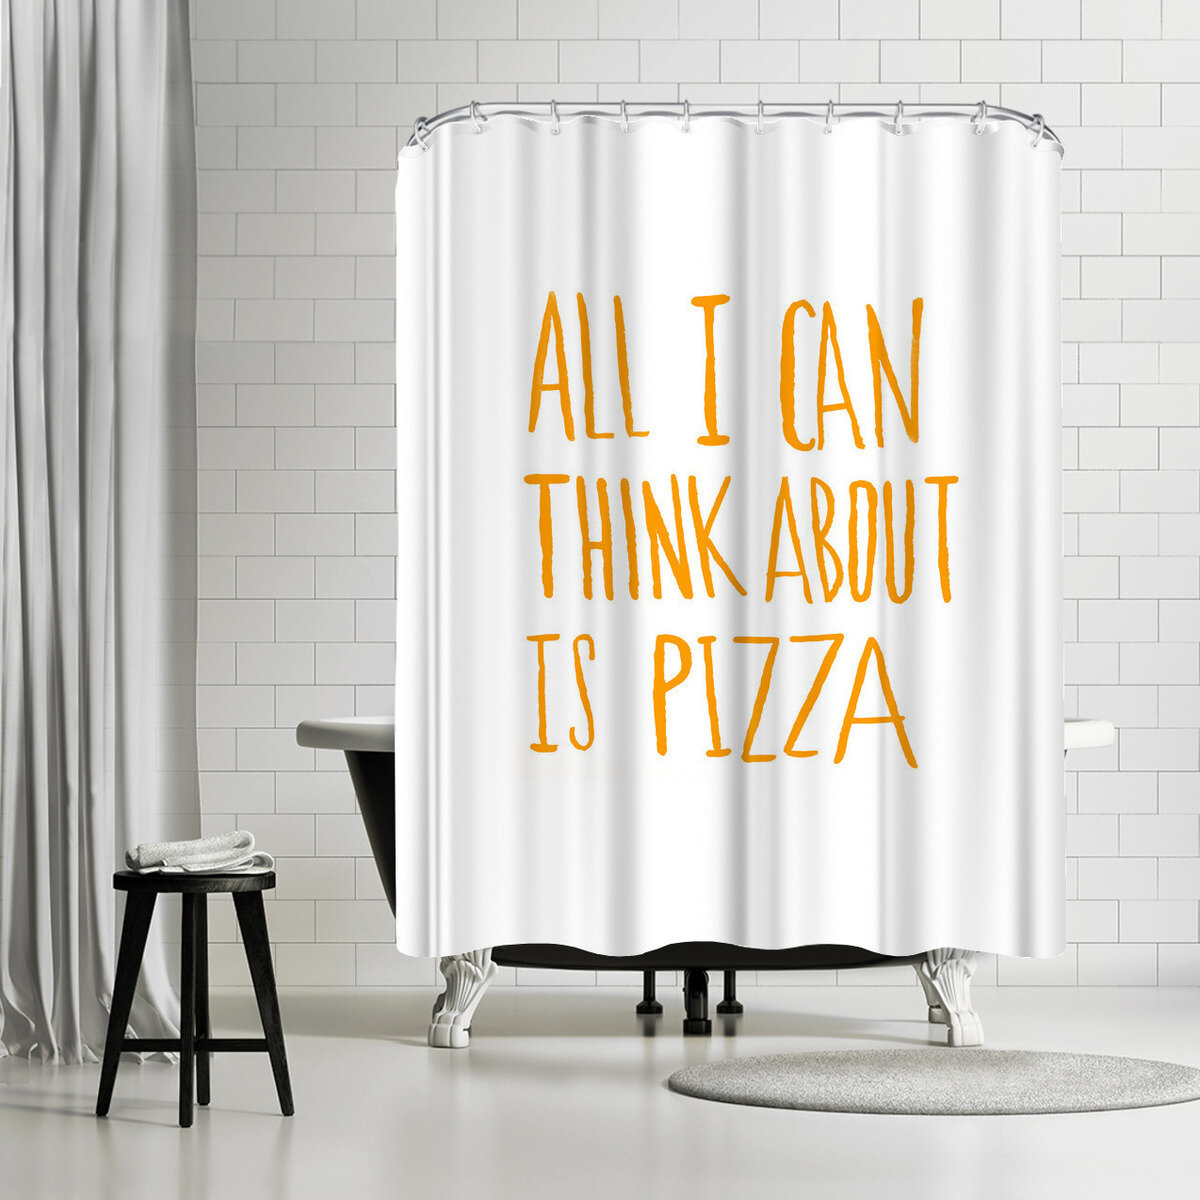 East Urban Home Leah Flores All I Can Think About Is Pizza Single Shower Curtain Wayfair